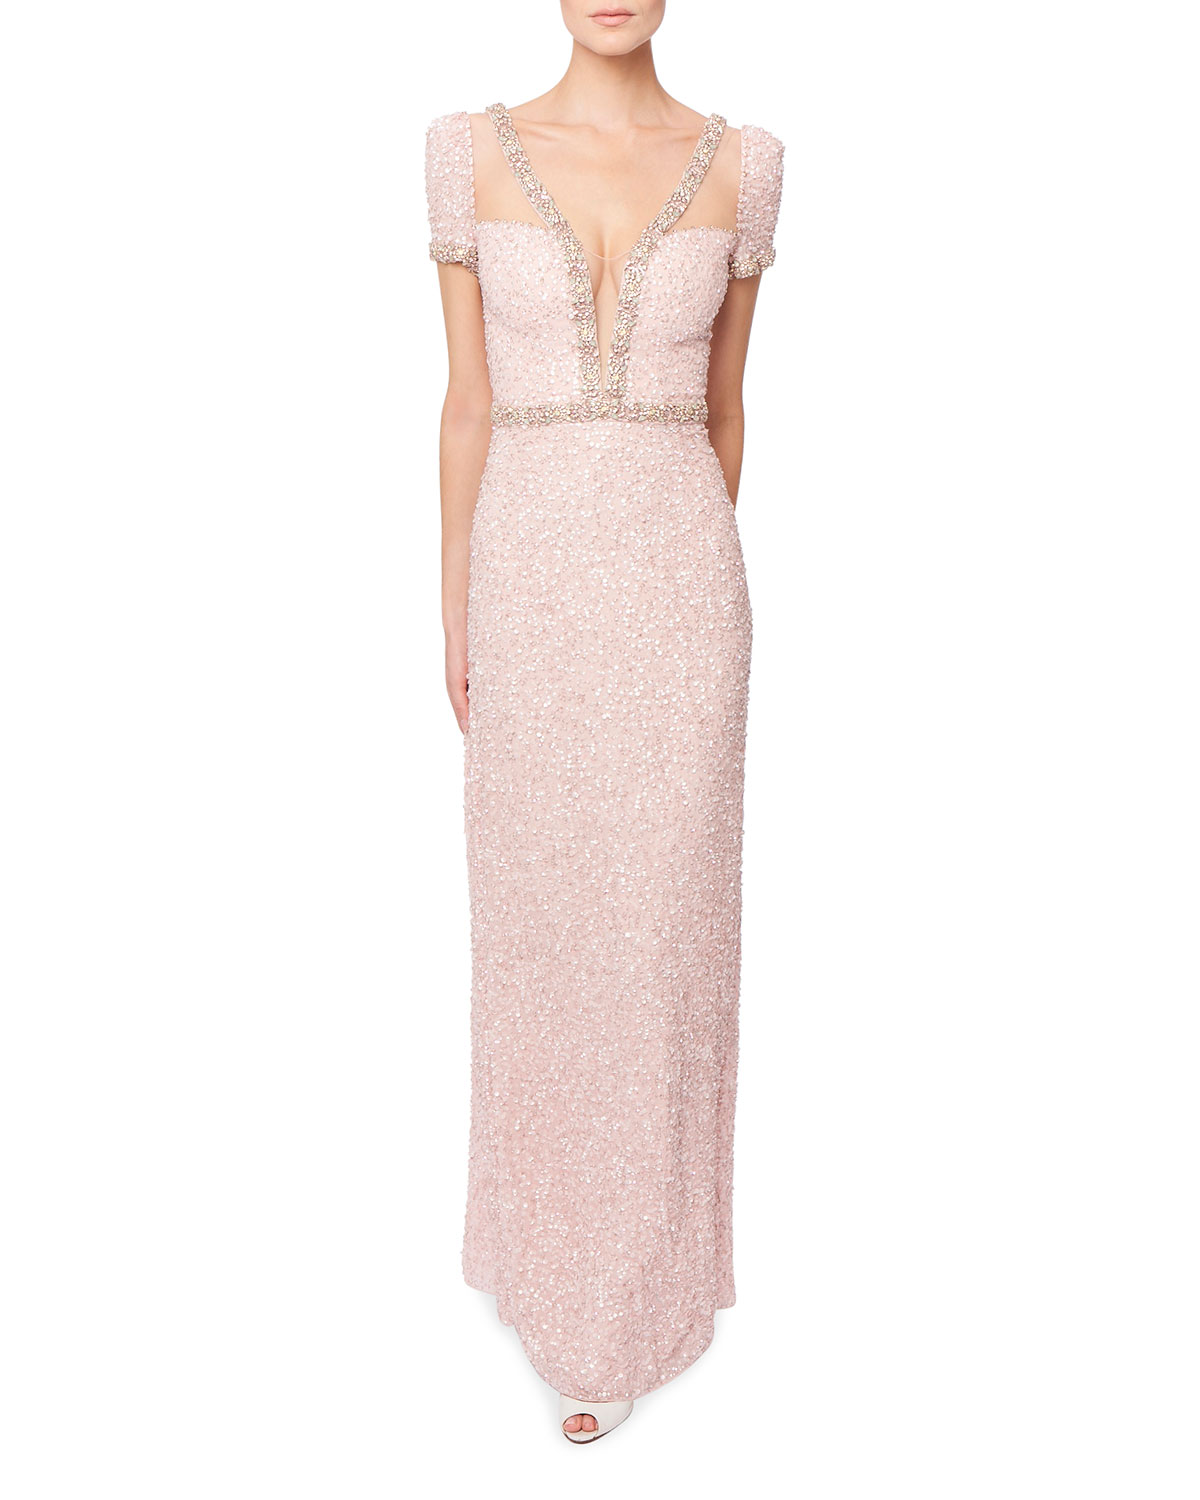 Jenny Packham BEADED ILLUSION SHORT-SLEEVE COLUMN GOWN